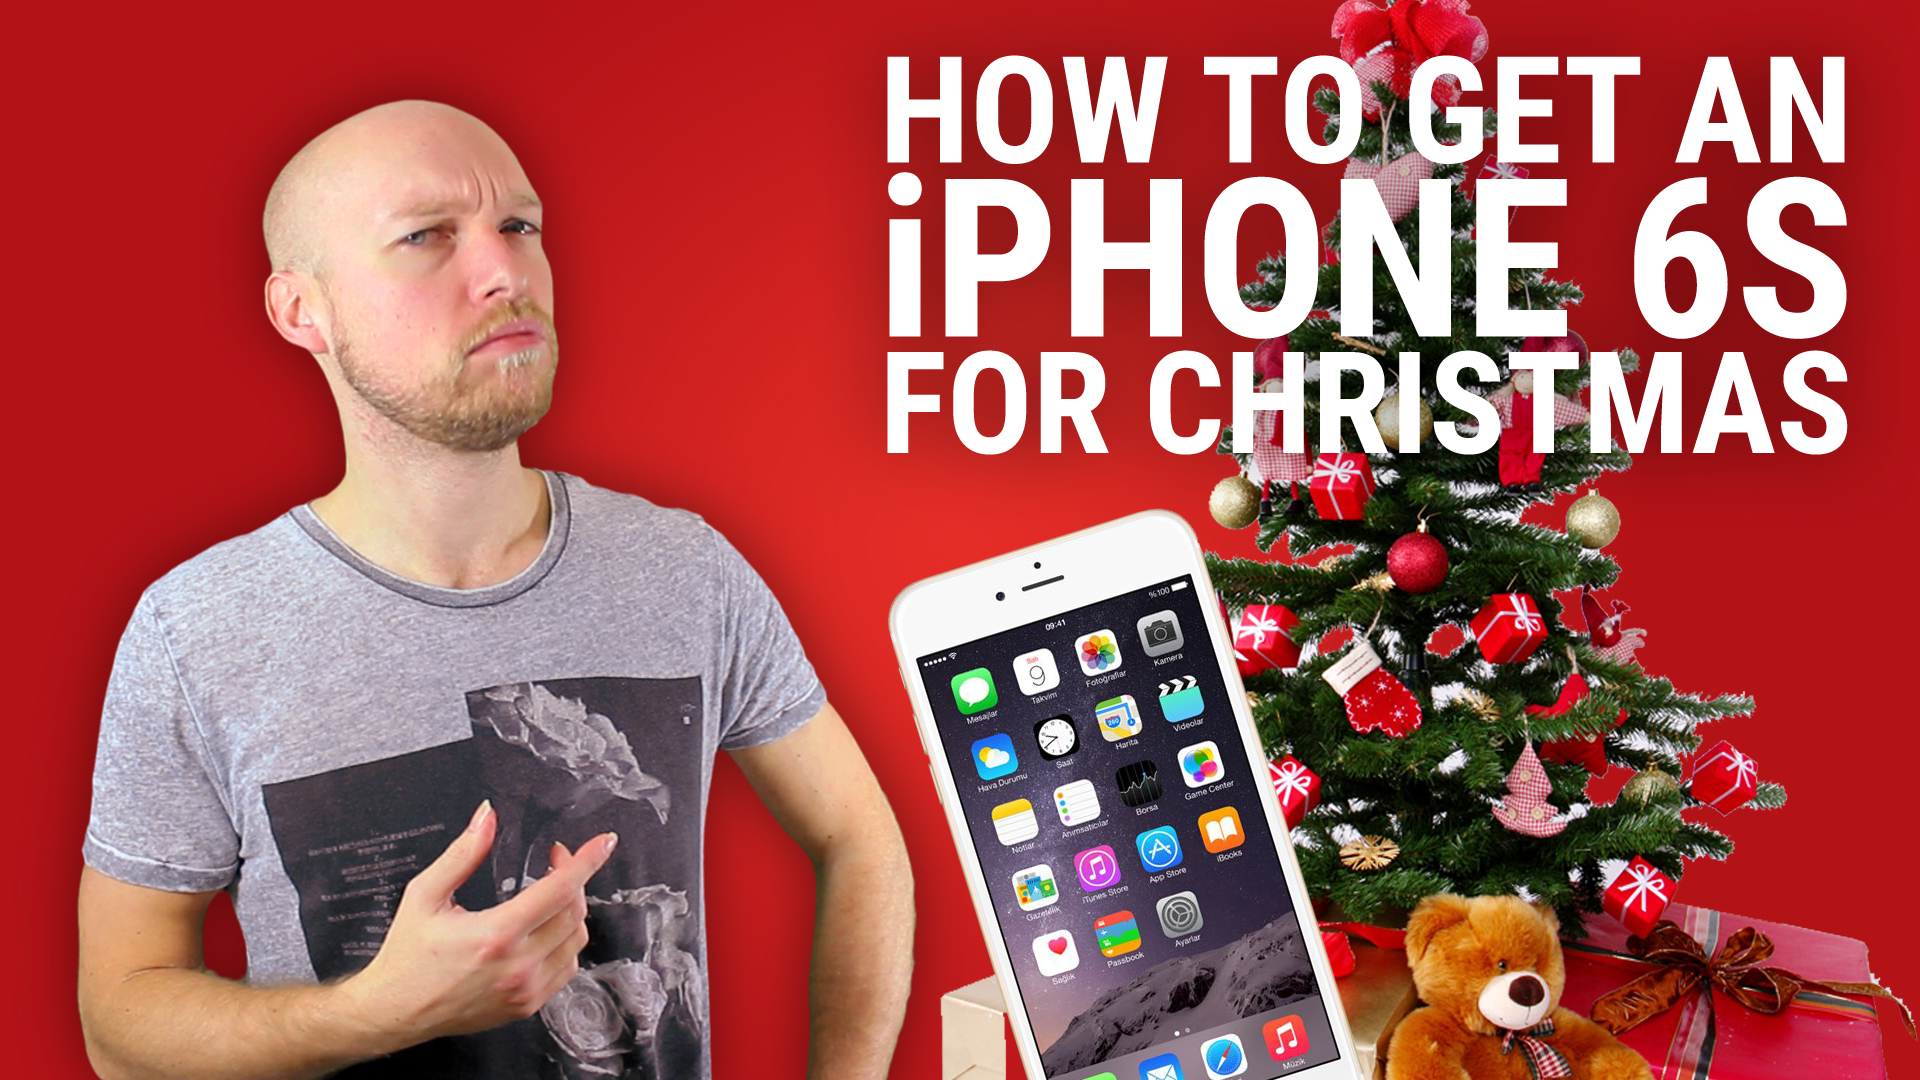 How to get an iPhone 6S for Christmas